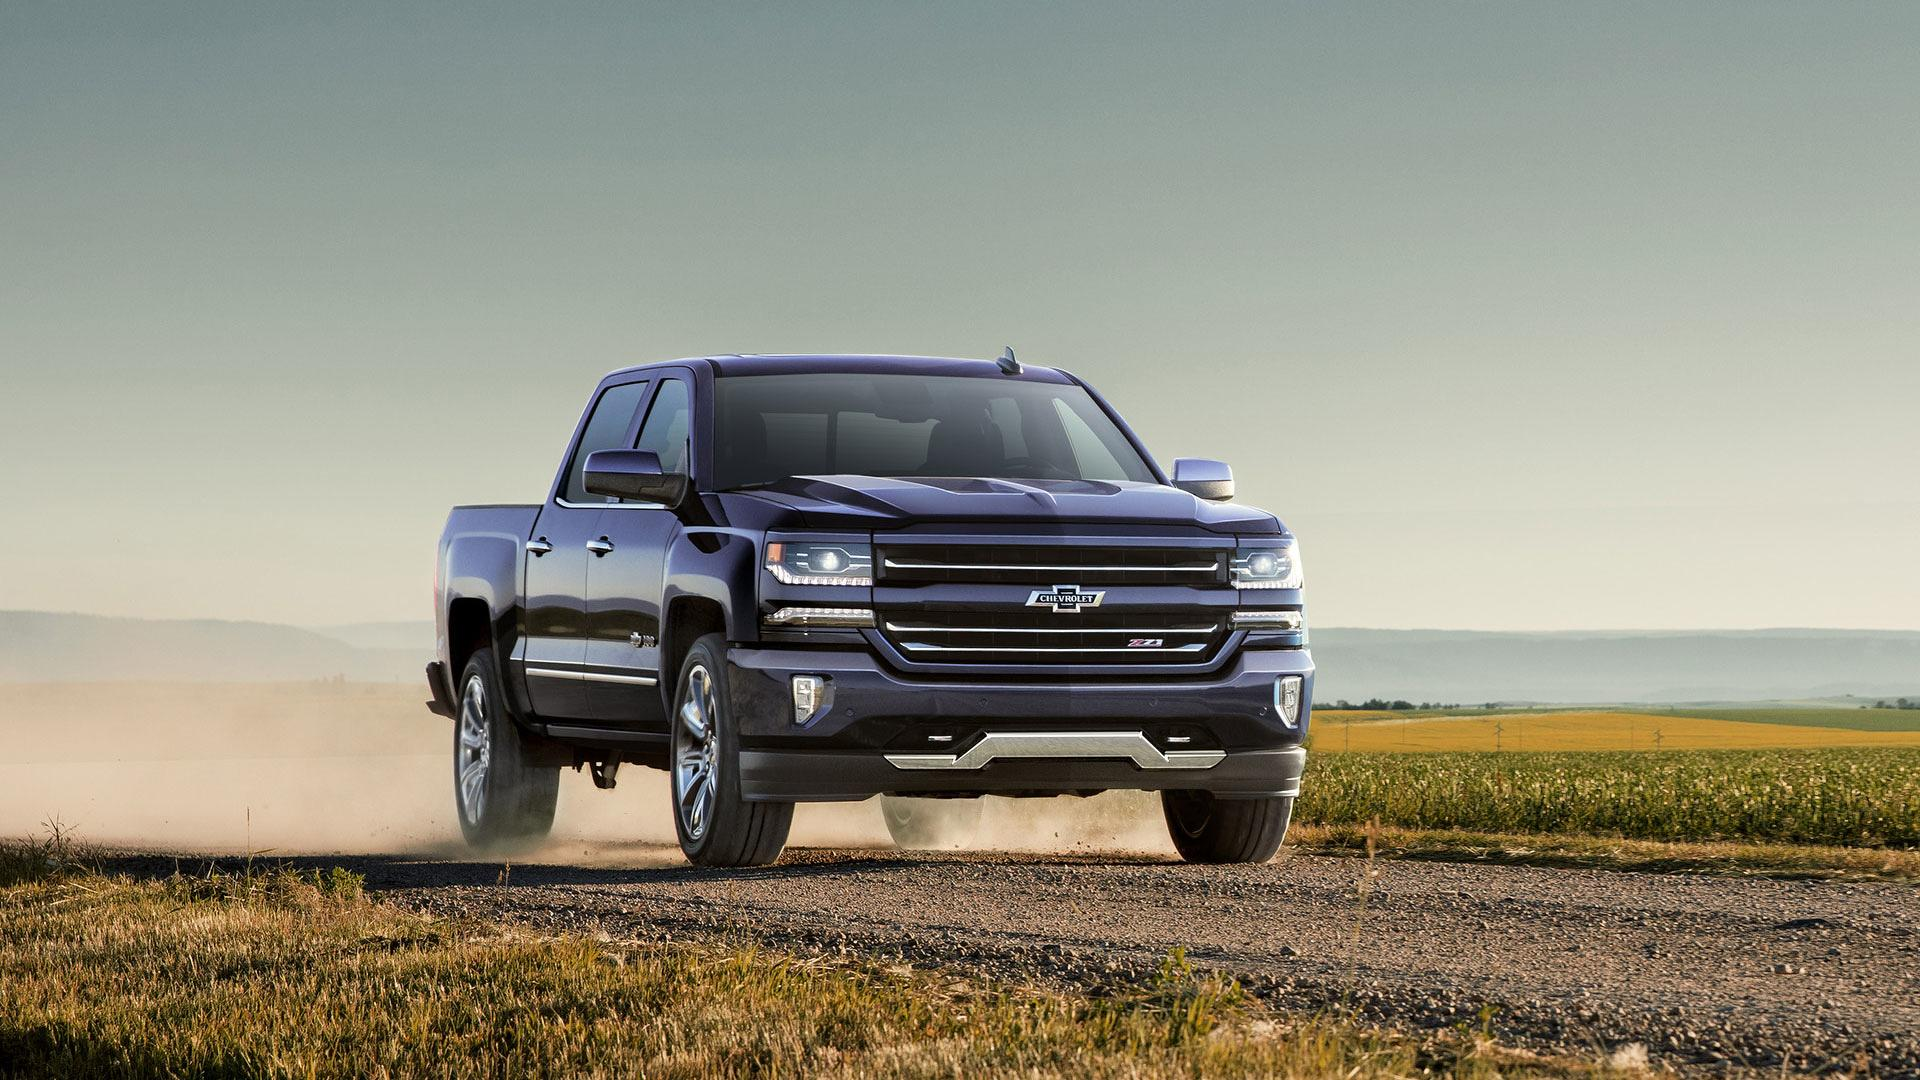 "2018 Centennial Edition Silverado - The Centennial Edition Silverado includes all of the features available on the LTZ Z71 crew cab and adds the Centennial Blue exterior paint color, front and rear heritage bowties, 100 year door badges, spray-in bedliner with heritage bowtie emblems and accessory floor liners with heritage bowtie emblems. The Centennial Edition also adds 22"" painted wheels with chrome inserts, 22"" all-terrain tires, chrome tow hooks and a chrome bowtie on the steering wheel."